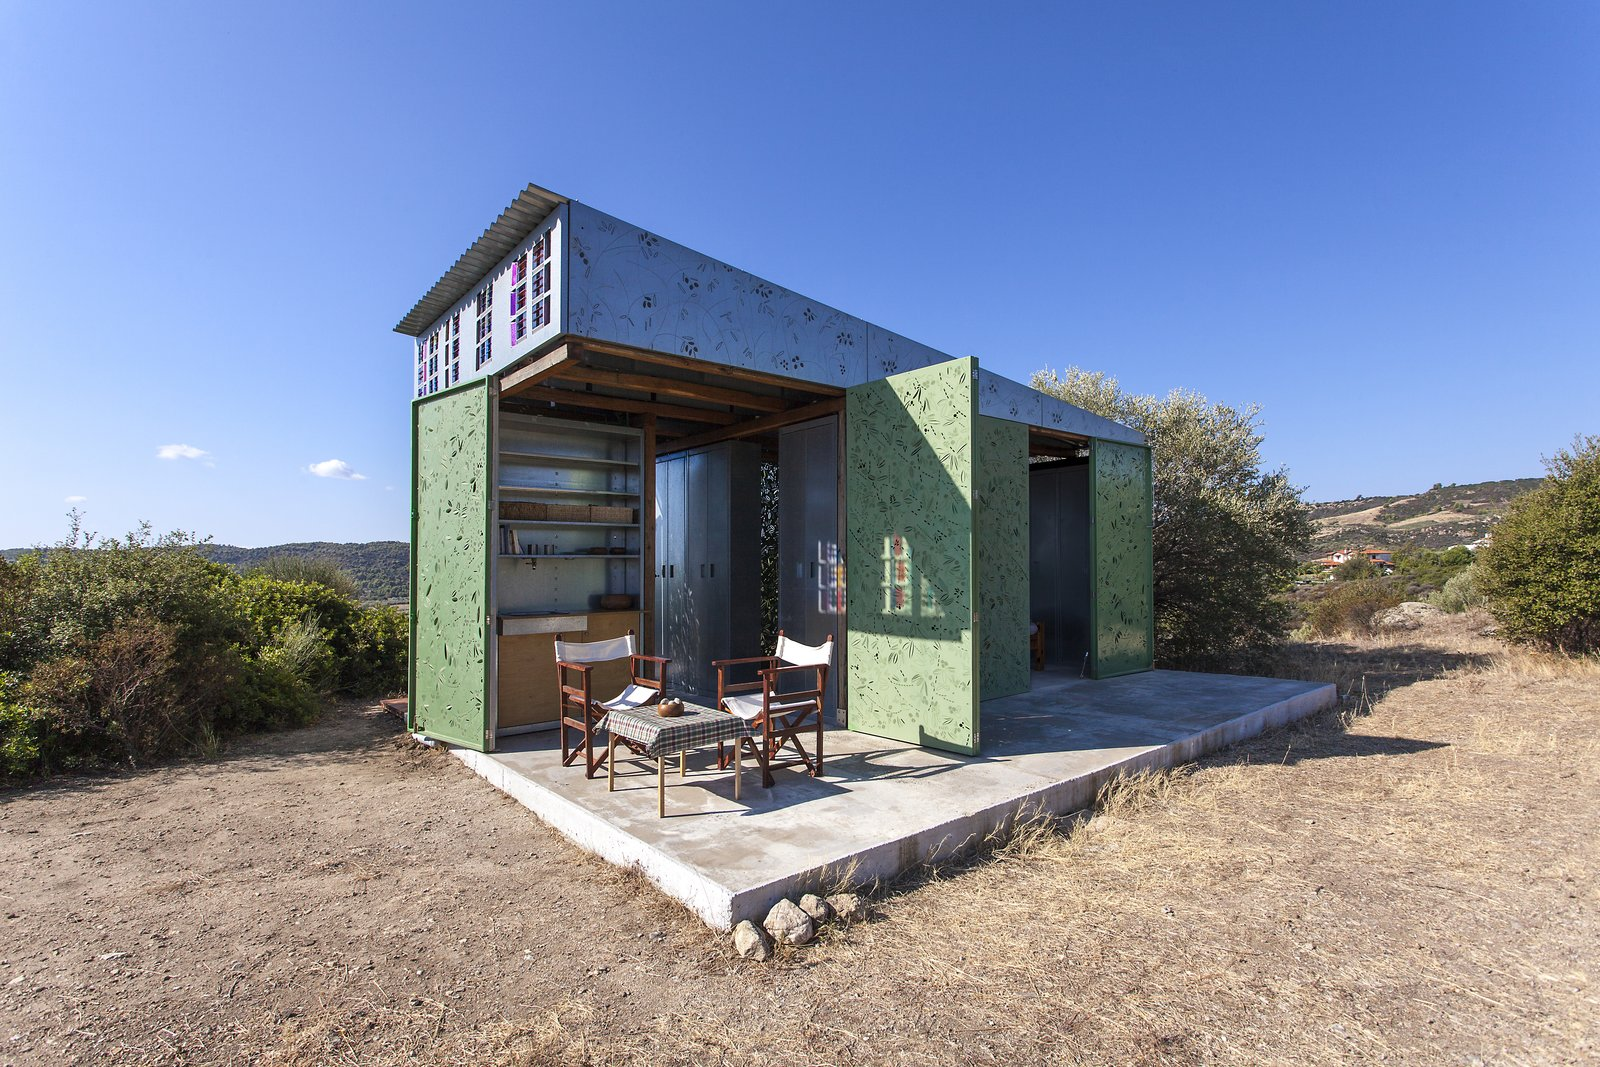 The Olive Tree House in Sithonia, Halkidiki, Greece Tagged: Wood Counter, Metal Cabinet, Concrete Floor, Wood Cabinet, Chair, Coffee Tables, Table, Desert, Trees, Shrubs, Small Patio, Porch, Deck, and Doors.  The Olive Tree House by Eva Sopeoglou